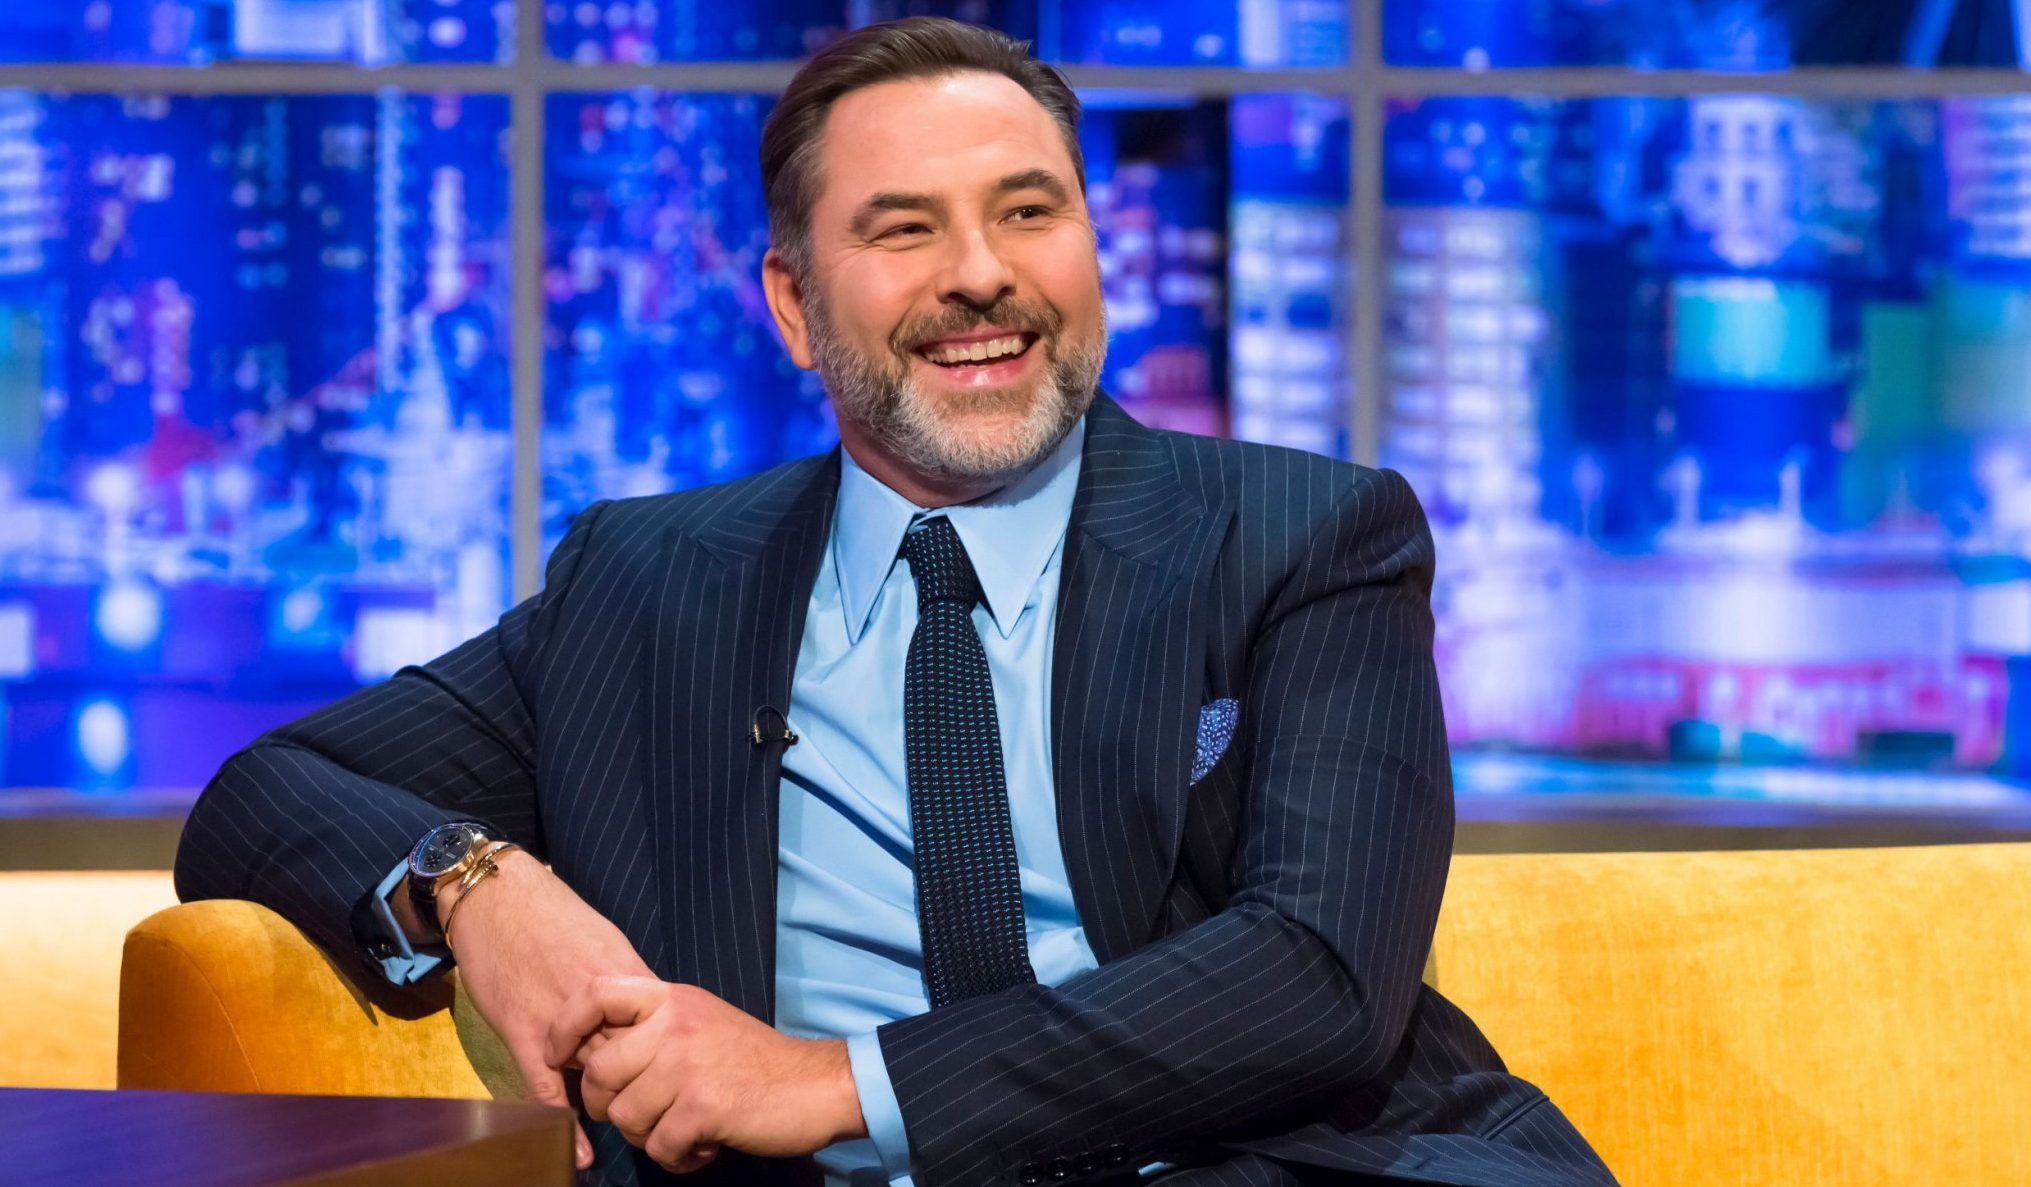 STRICT EMBARGO - NO USE BEFORE 00:01 FRIDAY 07 DEC 2018 - Mandatory Credit: Brian J Ritchie/Hotsauce Editorial Use Only Mandatory Credit: Photo by Brian J Ritchie/Hotsauce/REX (10015023au) David Walliams 'The Jonathan Ross Show', TV show, Series 13, Episode 13, London, UK - 08 Dec 2018